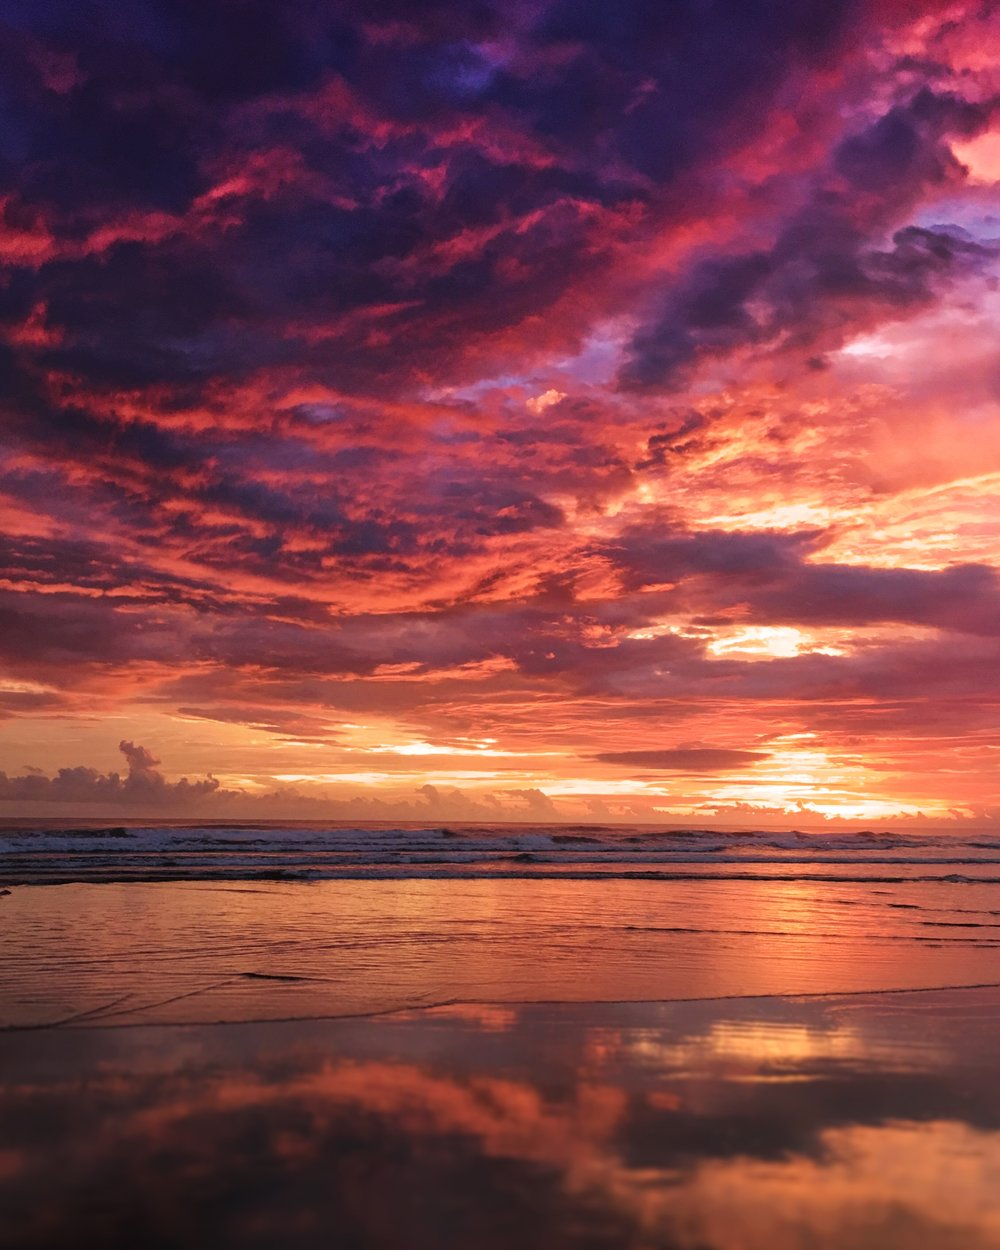 dominical-costa-rica-wander-south-sunset-1.jpg